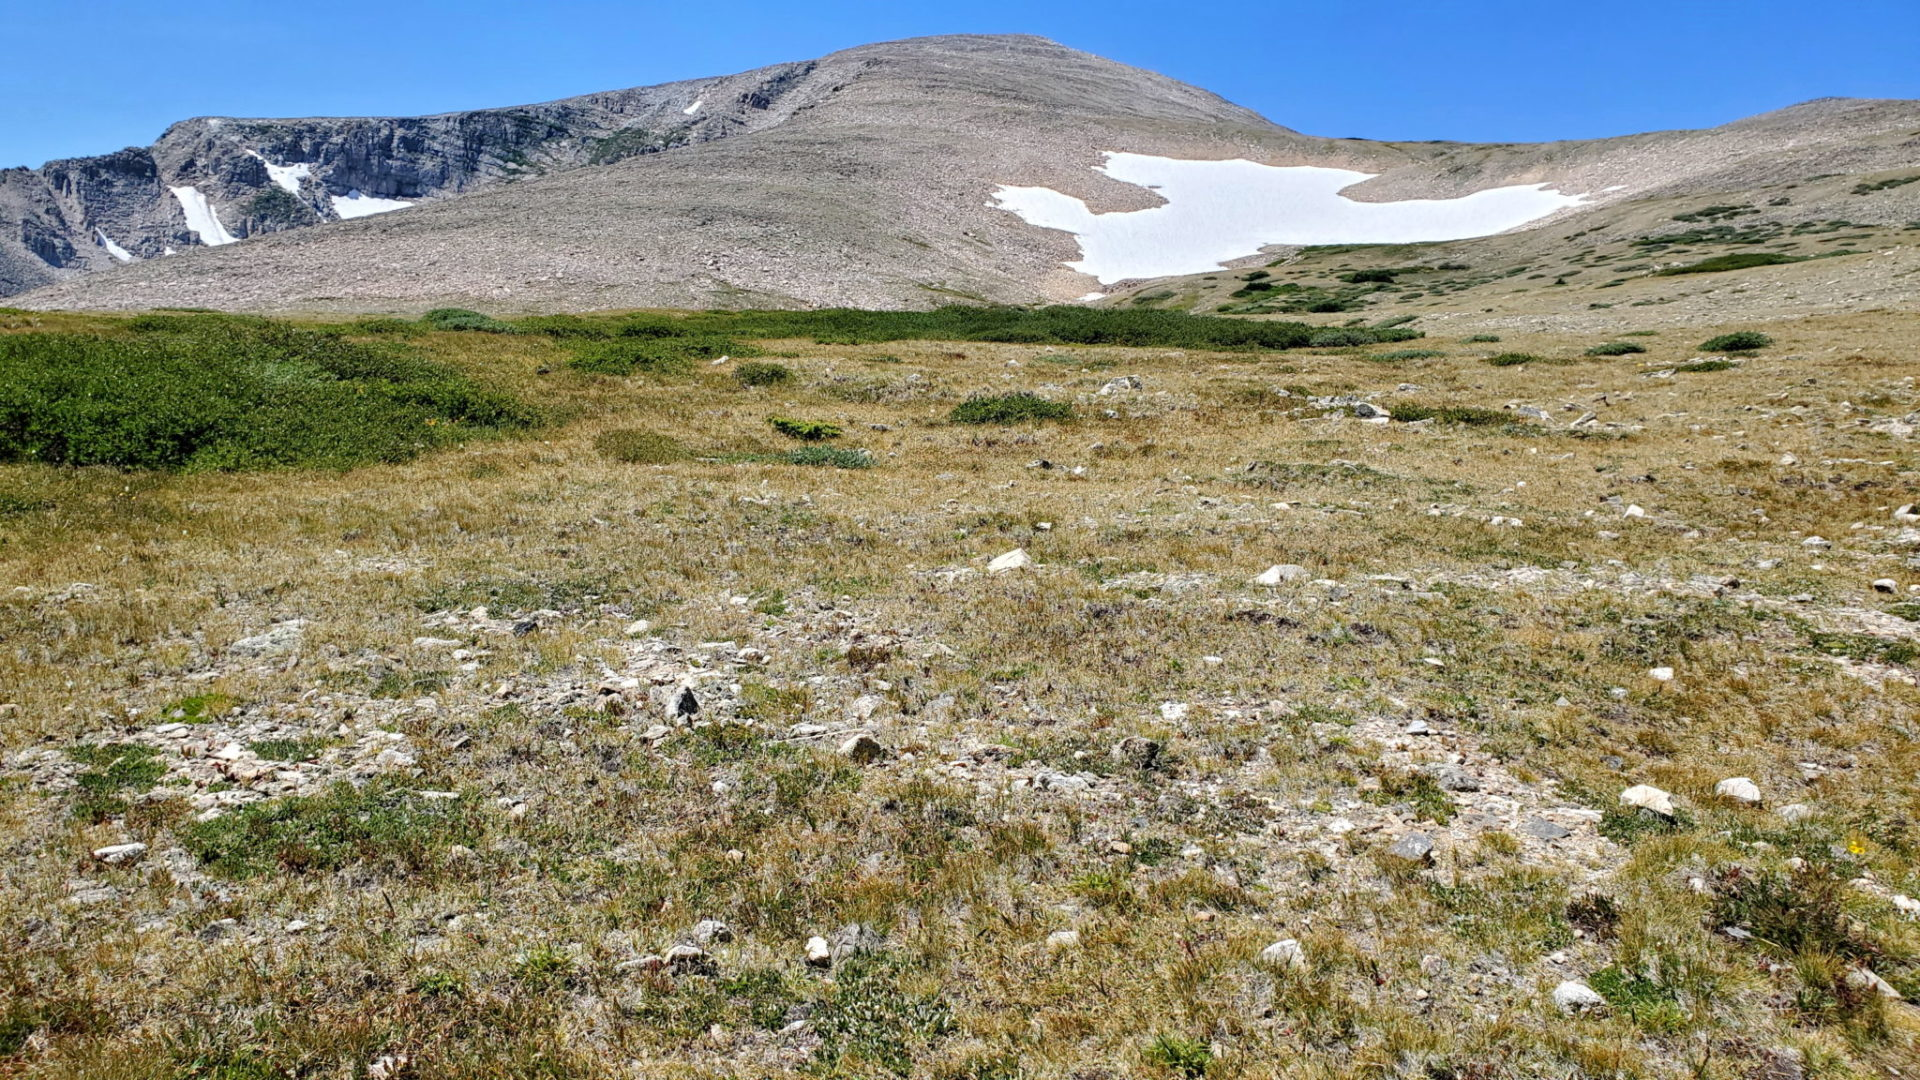 View of Mt Audubon looking west on the tundra